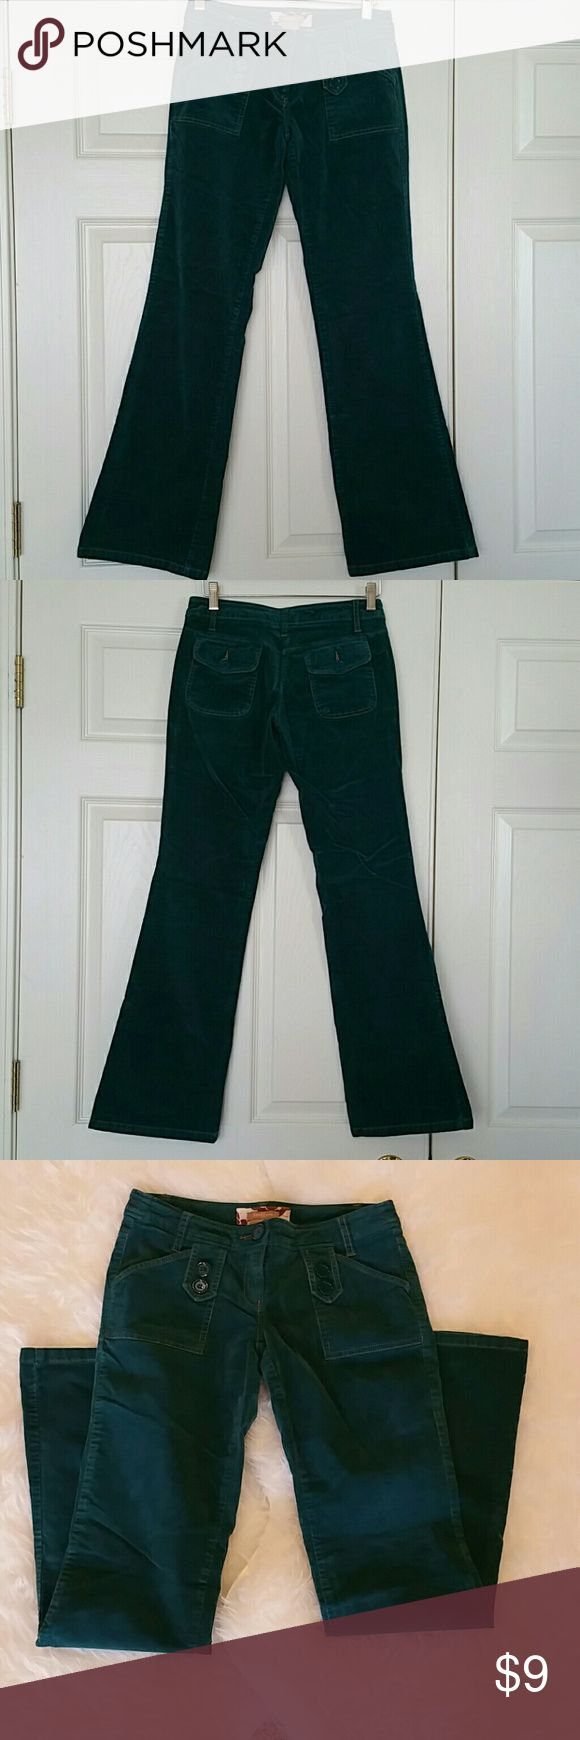 "BOGO Forever 21 Cord Jeans Forever 21 Cord Jeans.  Dark green with brown stiching. 97% cotton,  3% spandex. 31"" inseam.   BUY ONE GET ONE EQUAL OR LESSER PRICE ITEM FOR FREE.  OFFER ONLY APPLIES IF BOTH ITEMS ARE ON BOGO PROMO. Forever 21 Jeans Boot Cut"